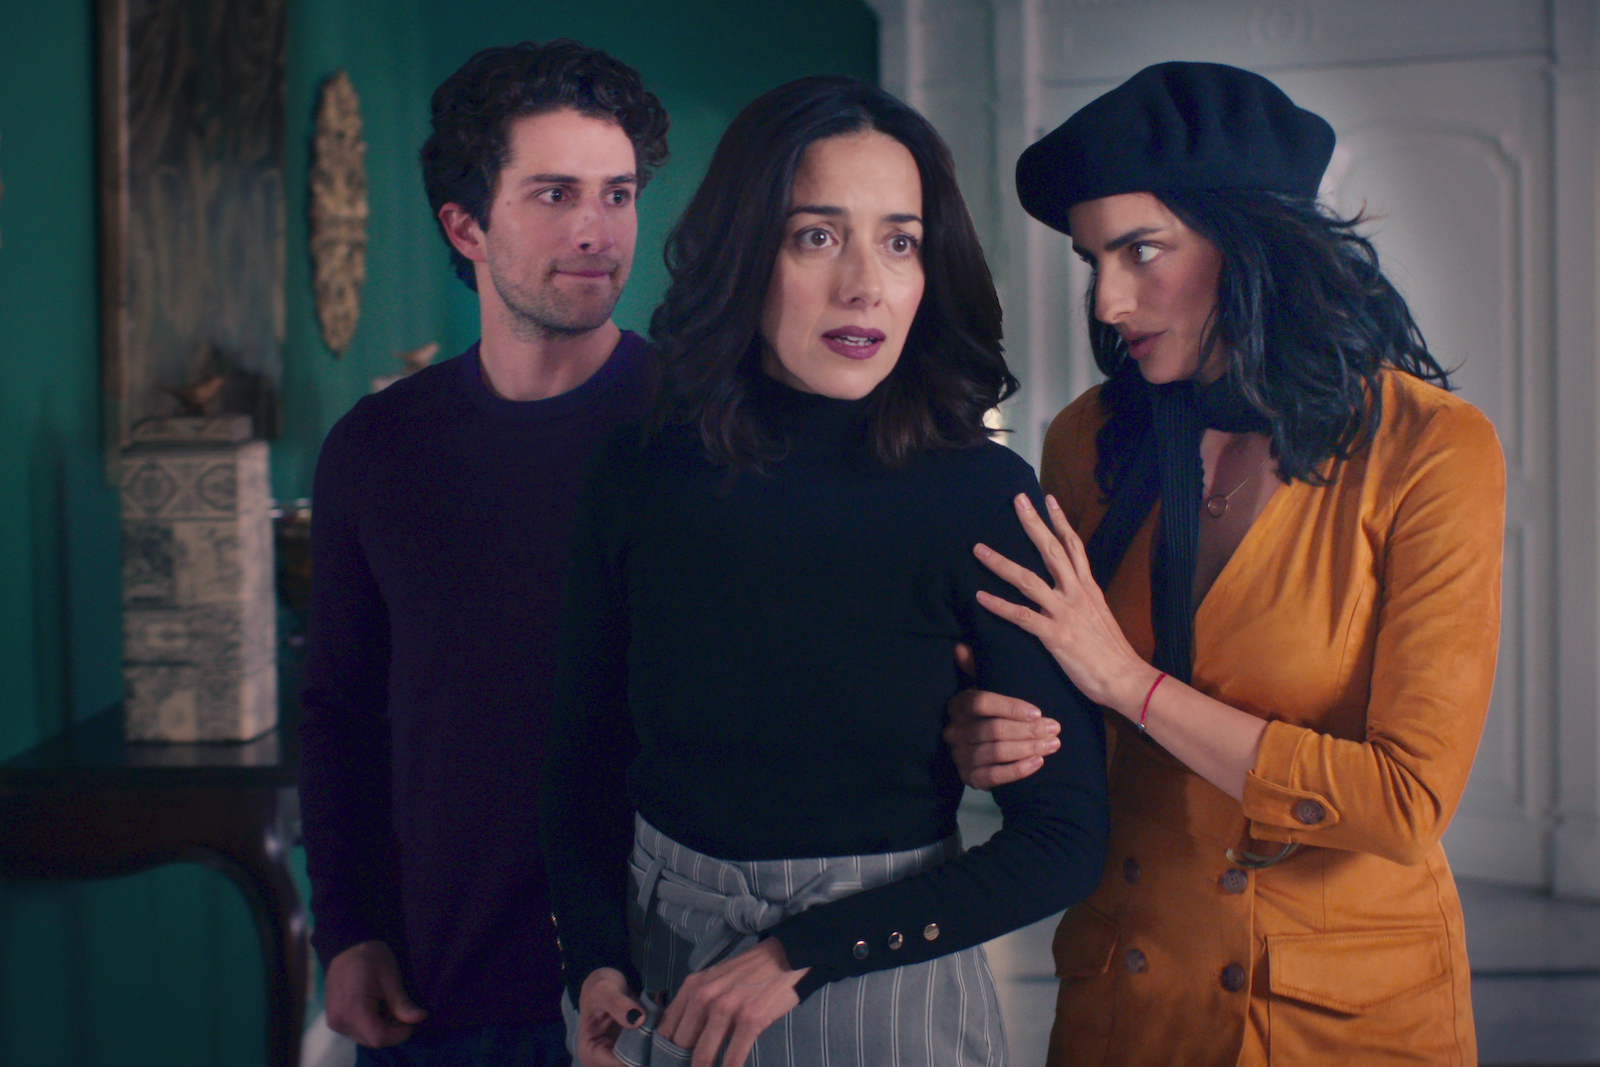 REVIEW: Even Without Veronica Castro, 'La Casa de las Flores' Season 2 Is Still as Dysfunctional & Hilarious as Ever